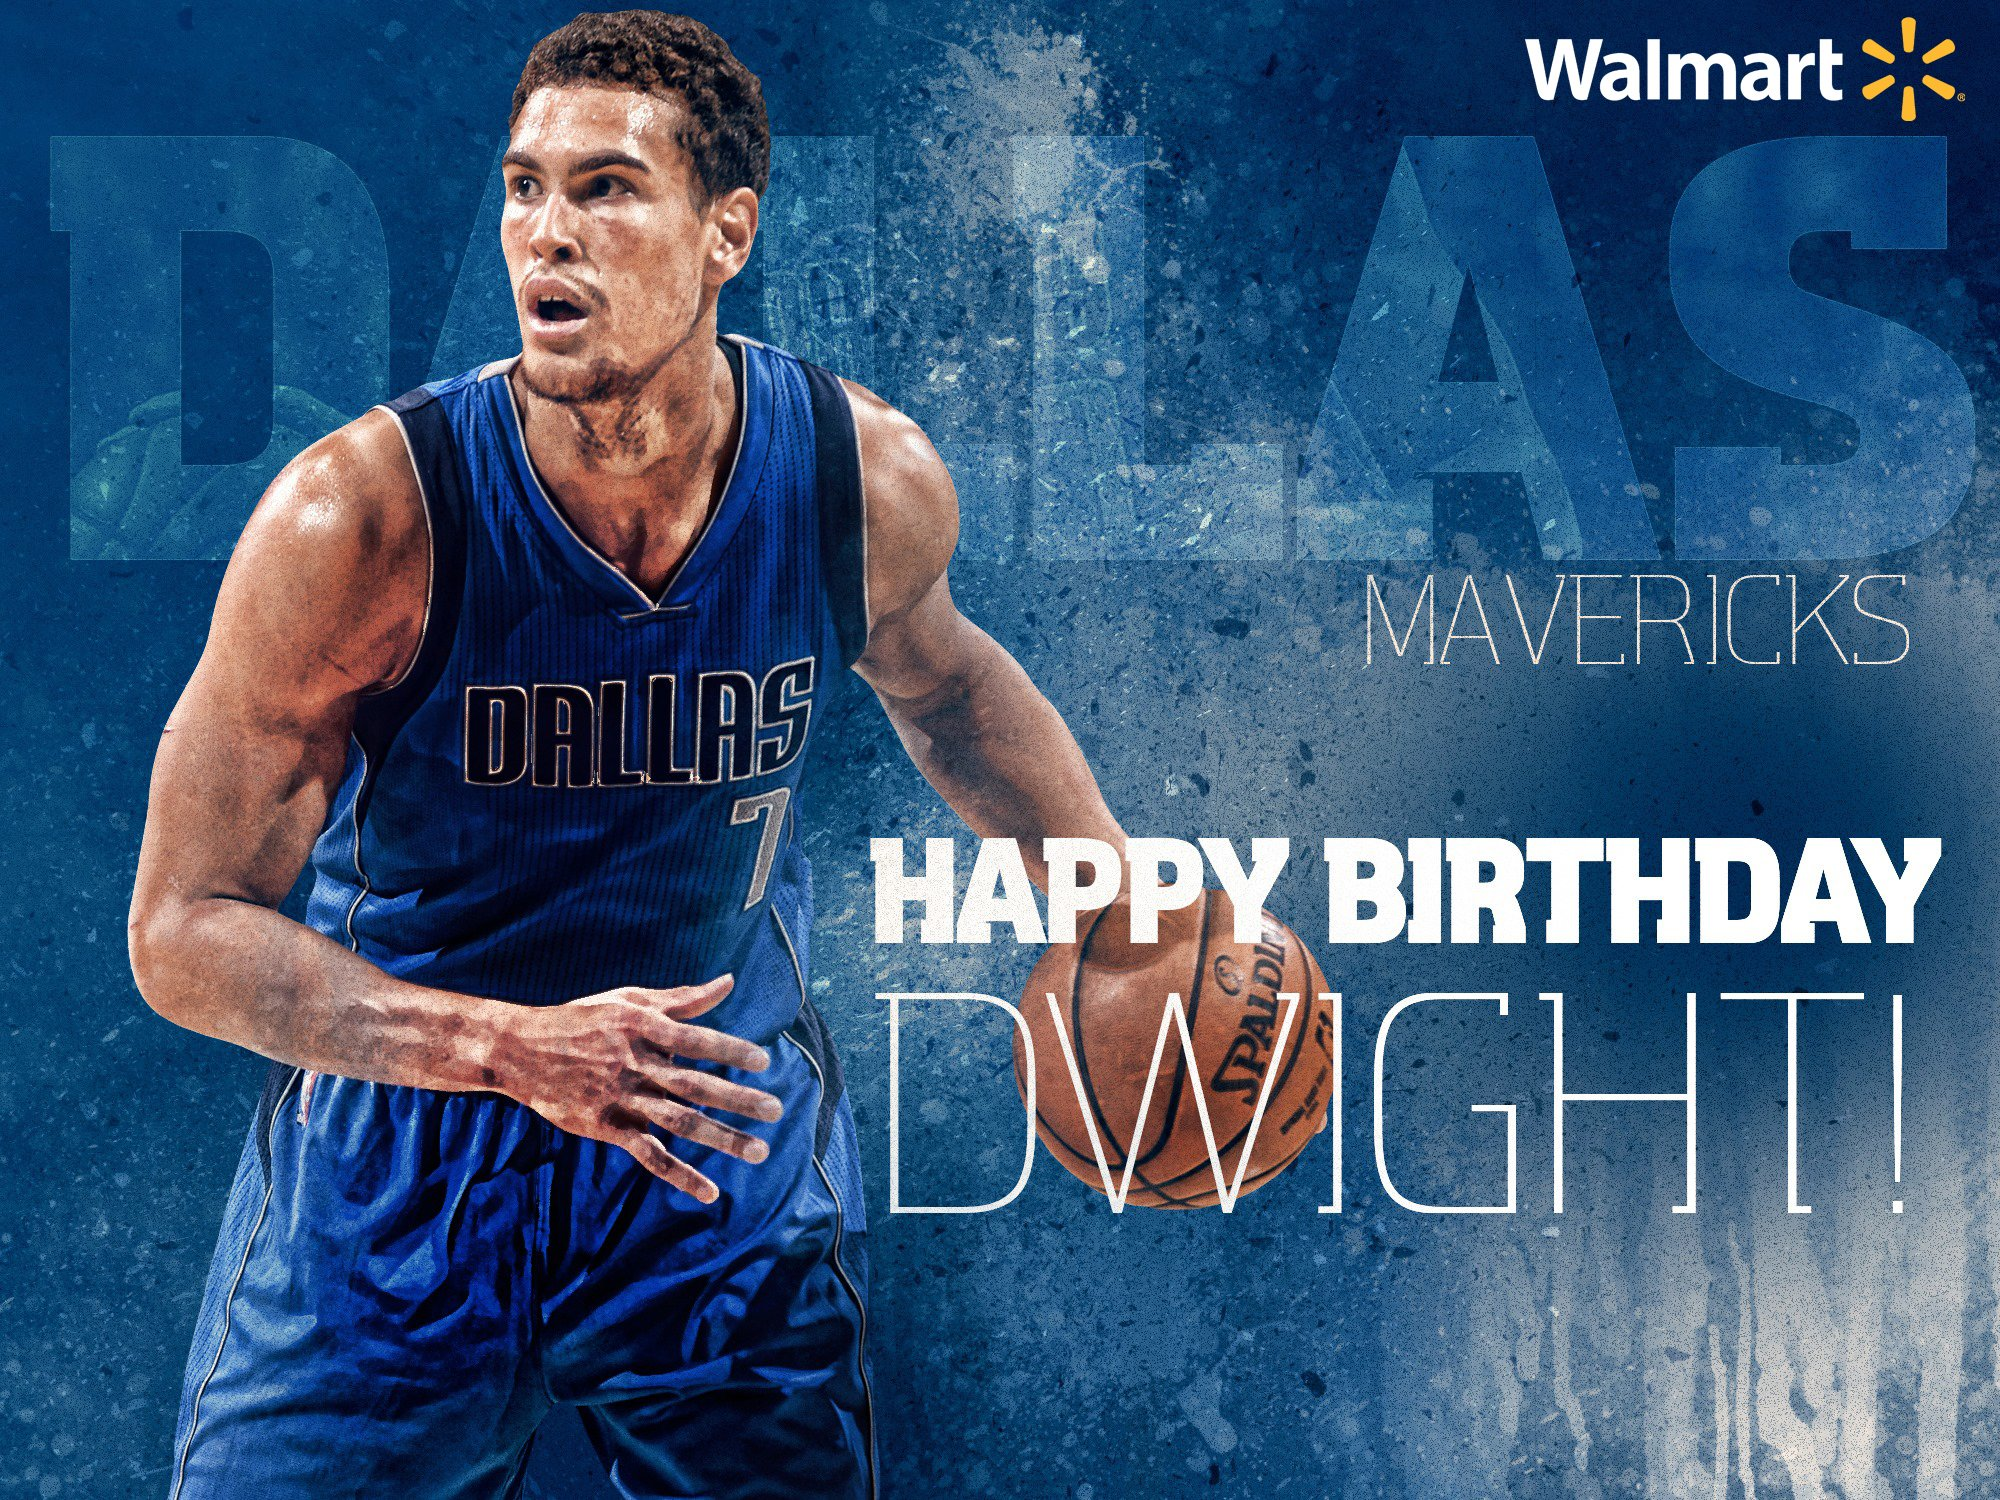 We have a very special #MavsBirthday today! Join us and @Walmart in wishing @DwightPowell33 HAPPY BIRTHDAY! ������ https://t.co/LvfcAih9x4